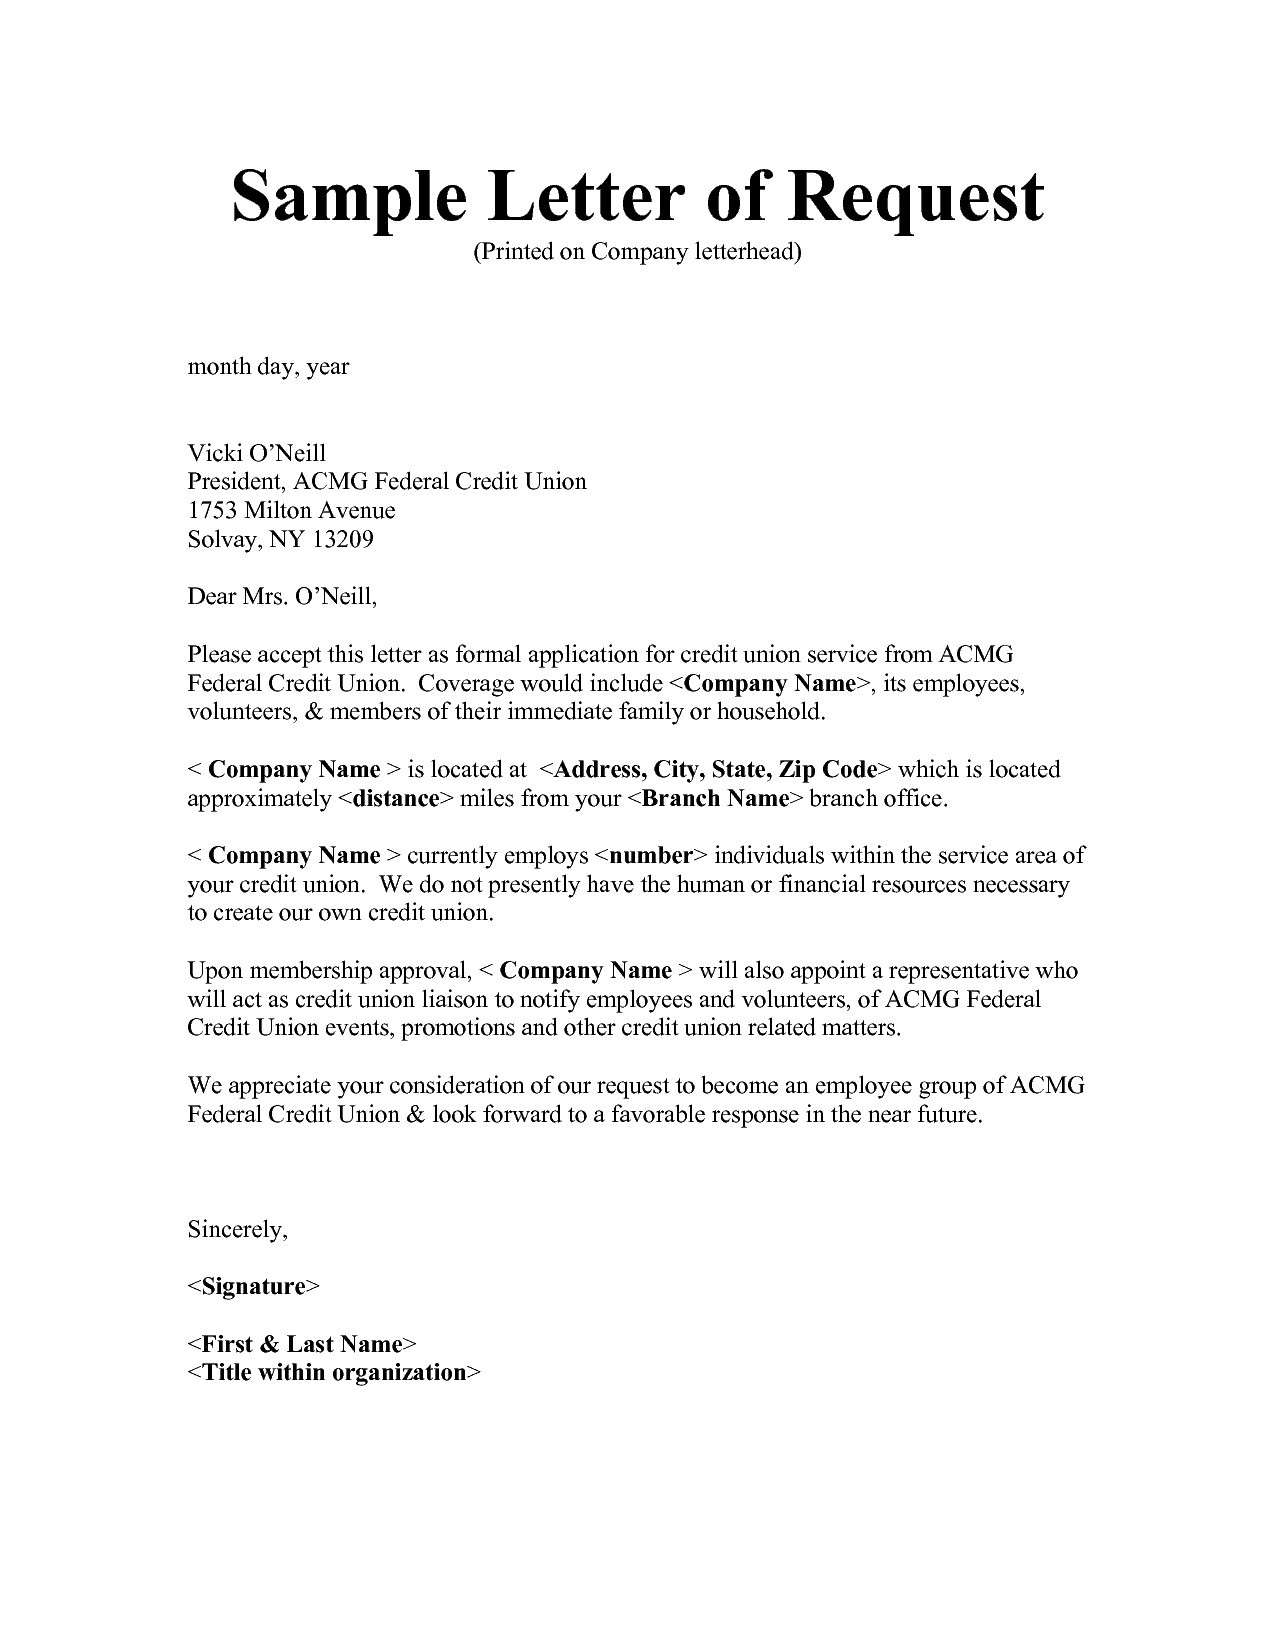 rent reduction letter template example-Sample Letter Request Rent Reduction Archives 15-g